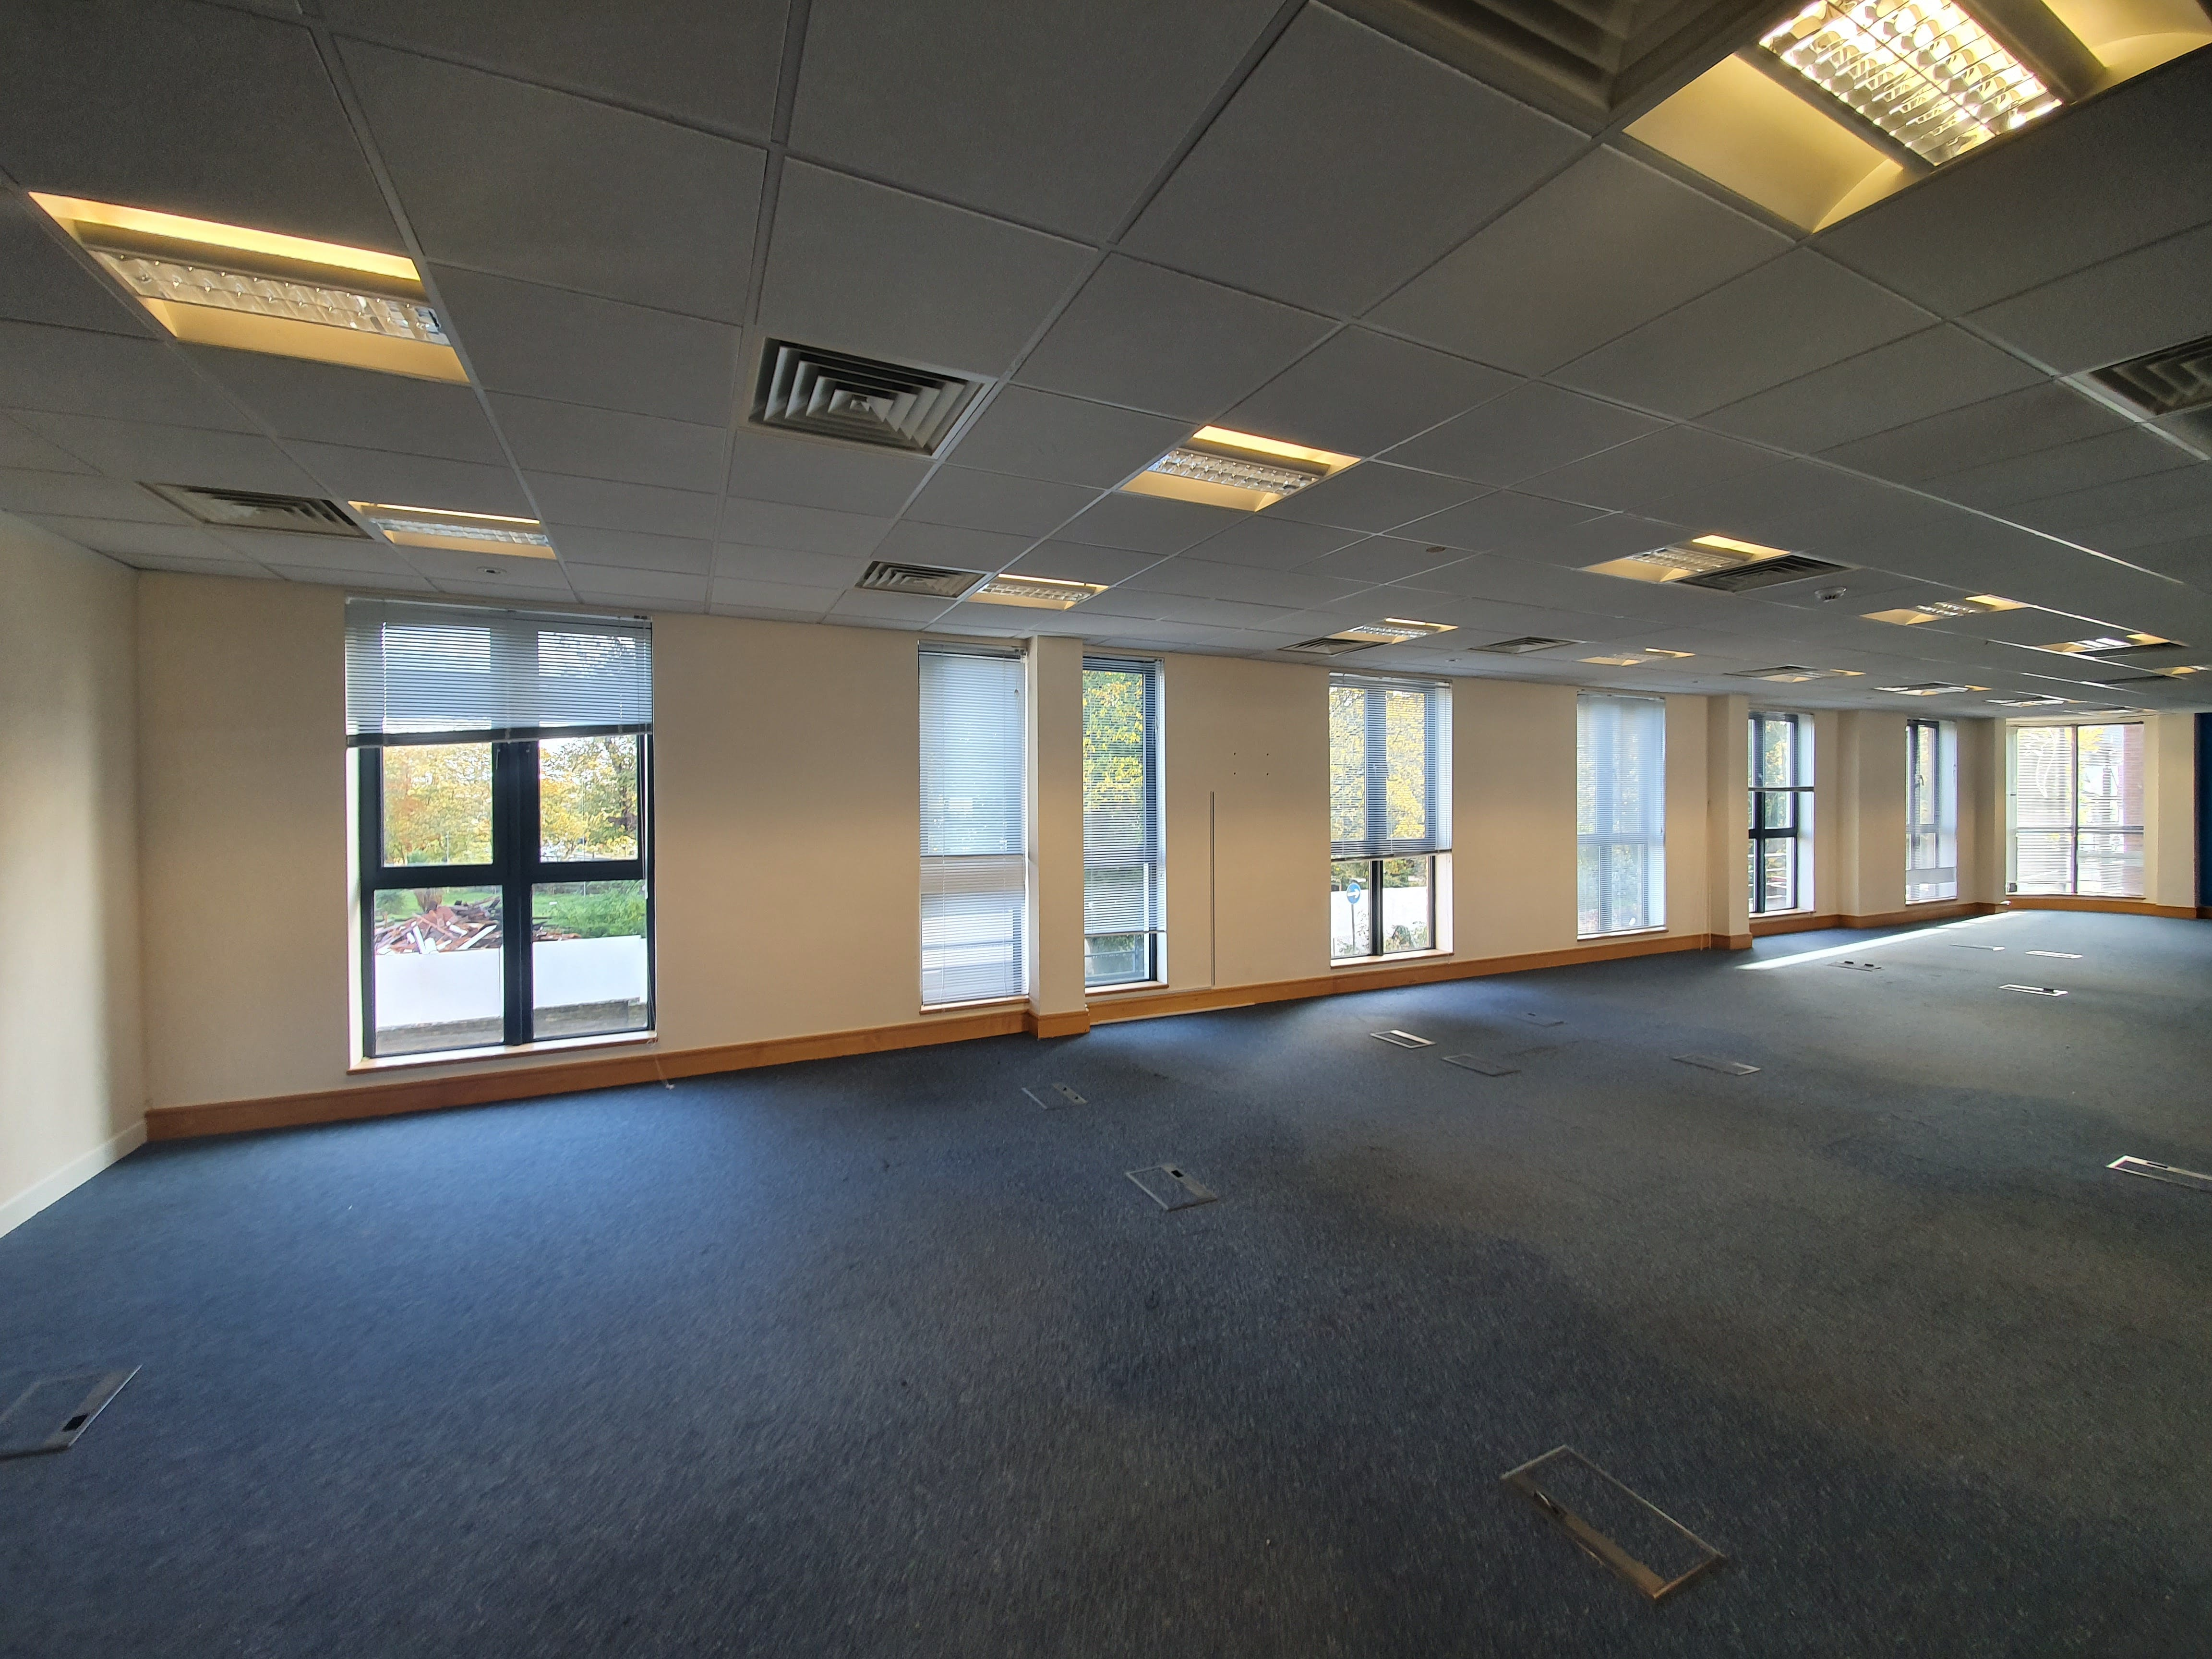 Charta House, Church Street, Staines-upon-Thames, Offices To Let - 20191104_092424.jpg